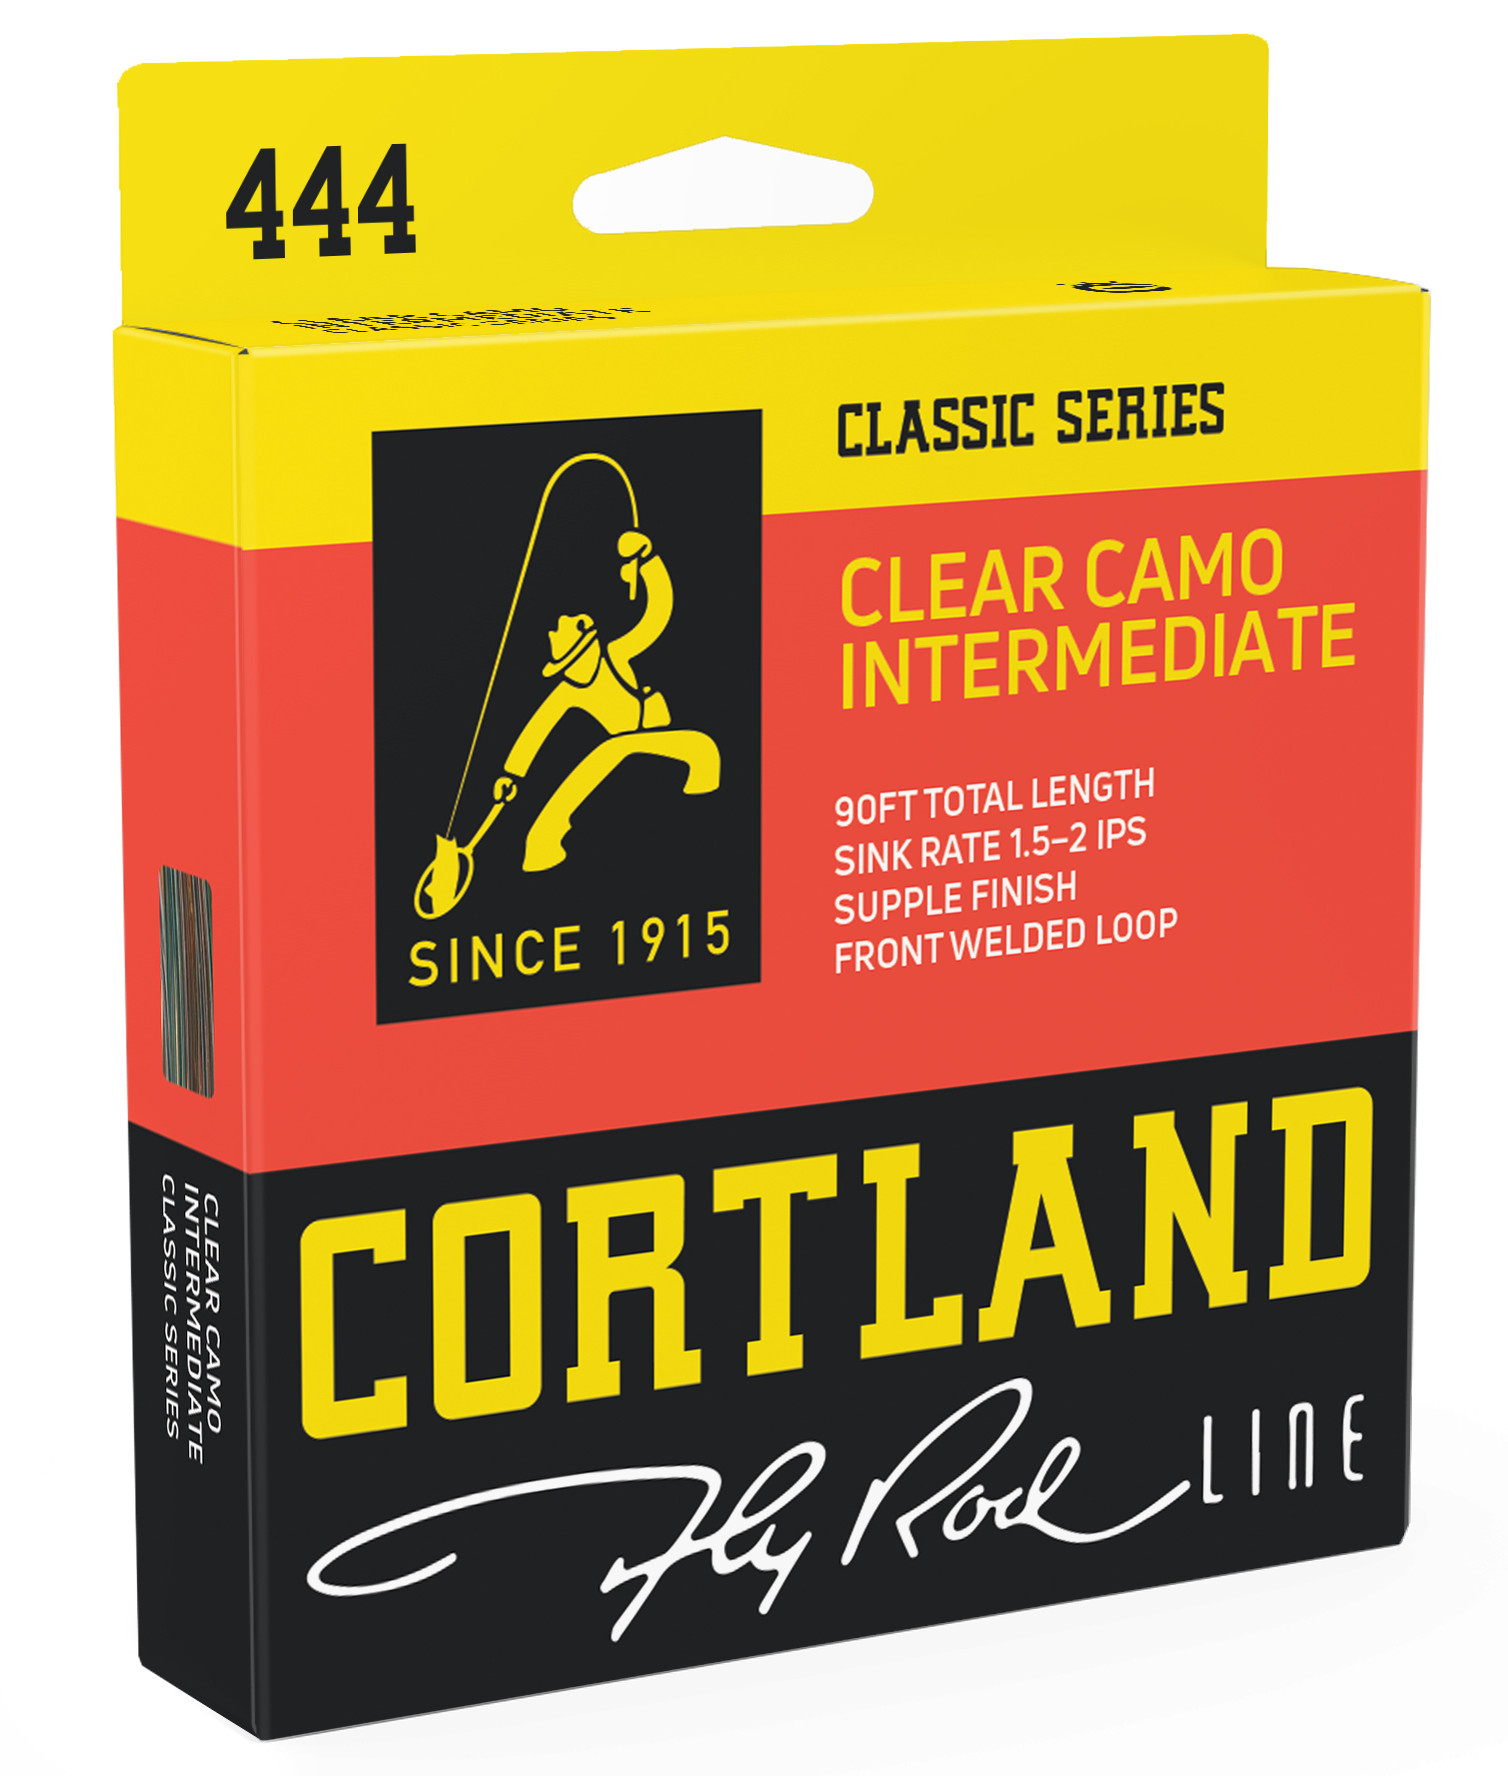 Fly Line Intermediate Cortland 444 CLEAR CAMO Classic - Box